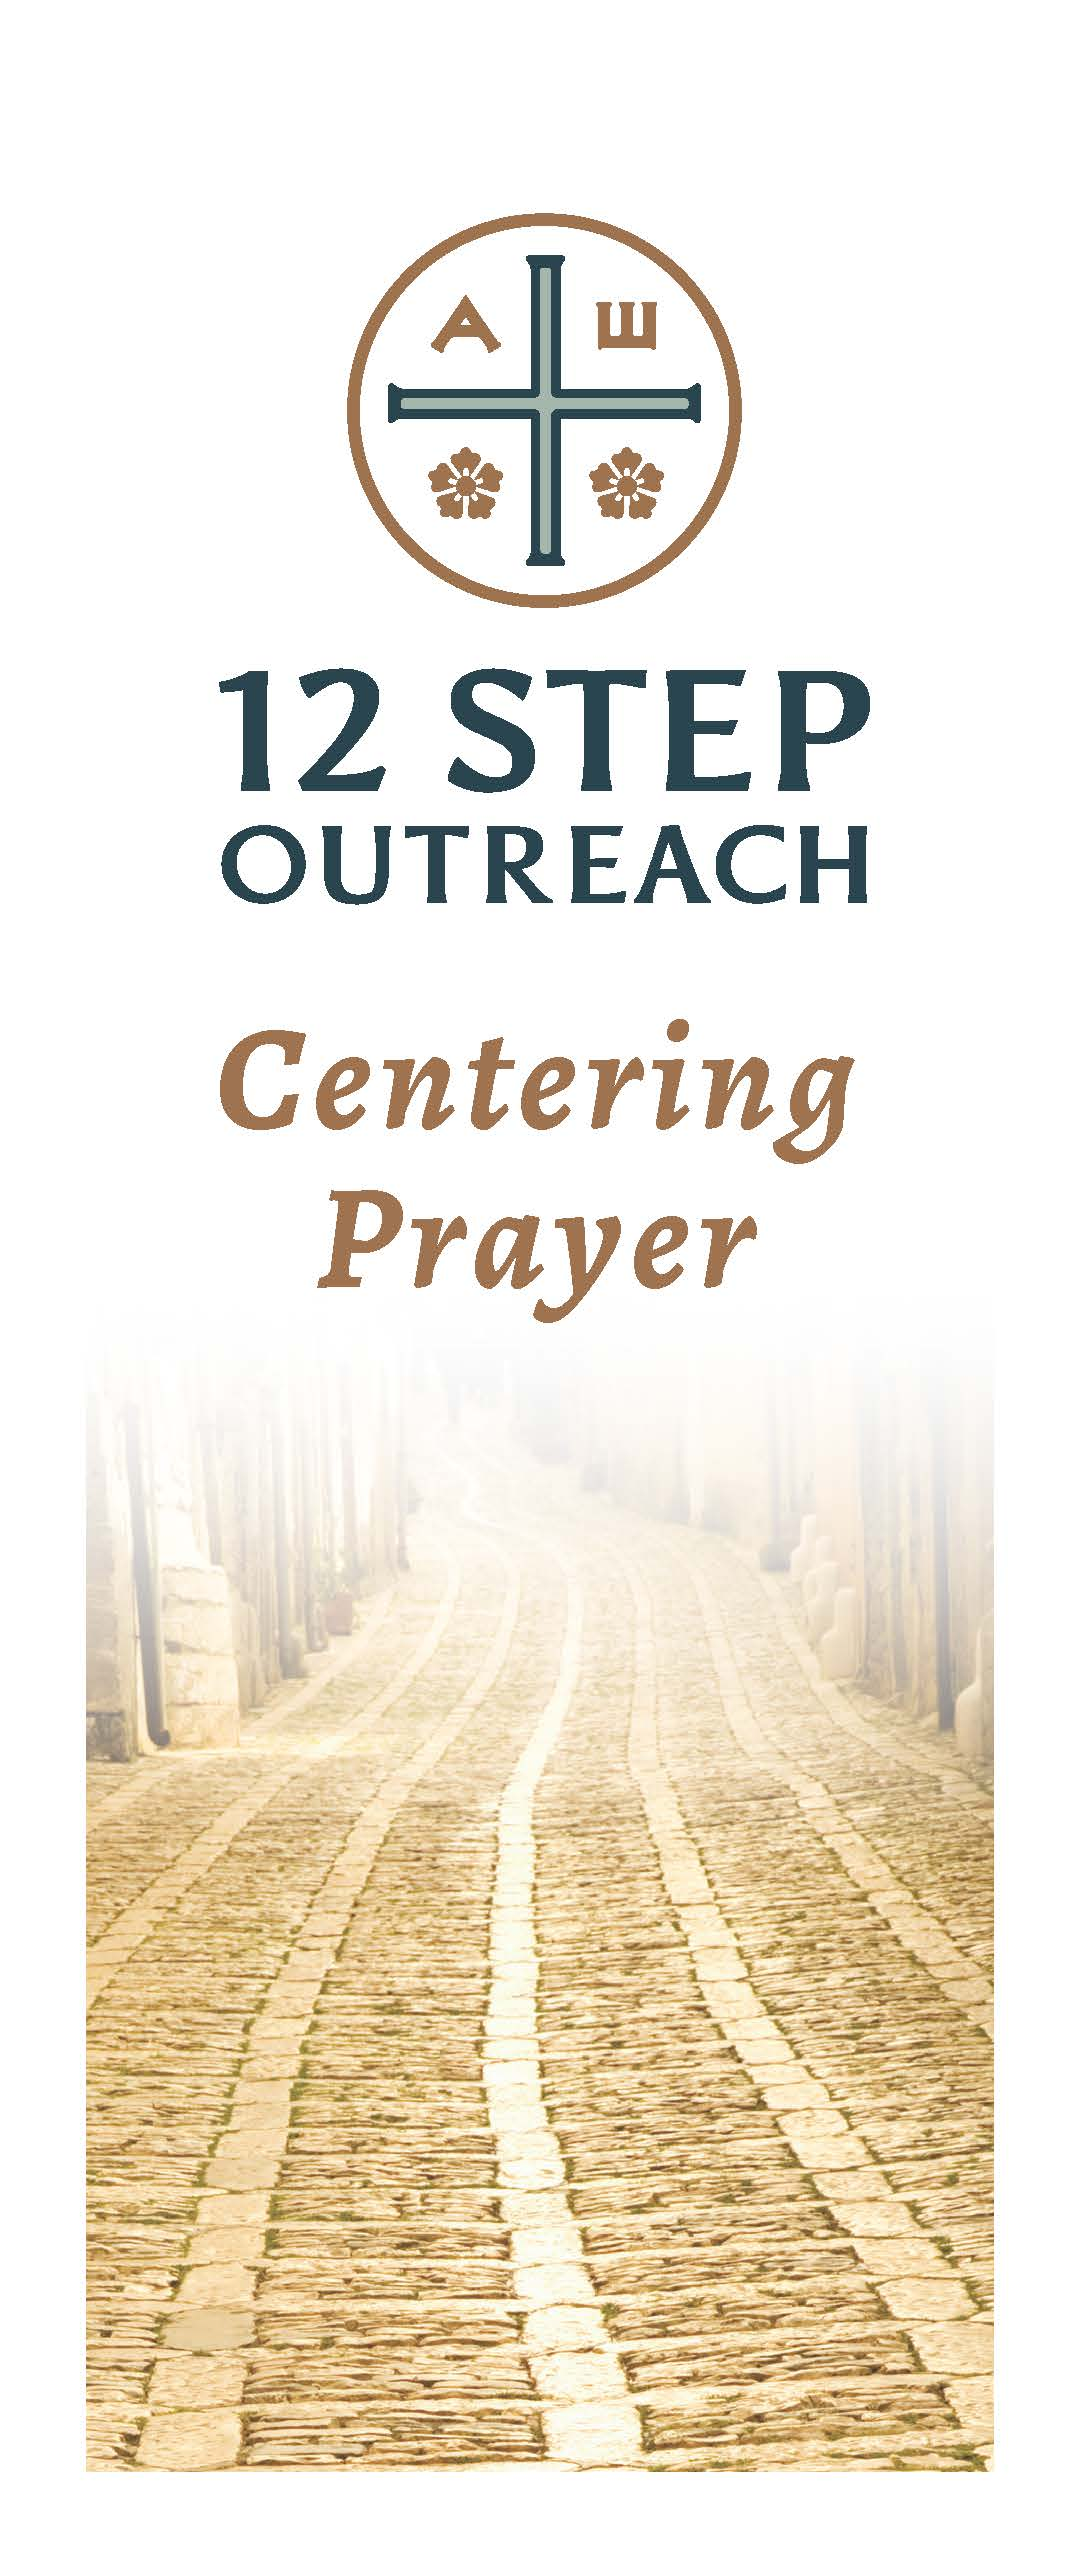 12 Step Outreach Centering Prayer Brochure In Packets Of